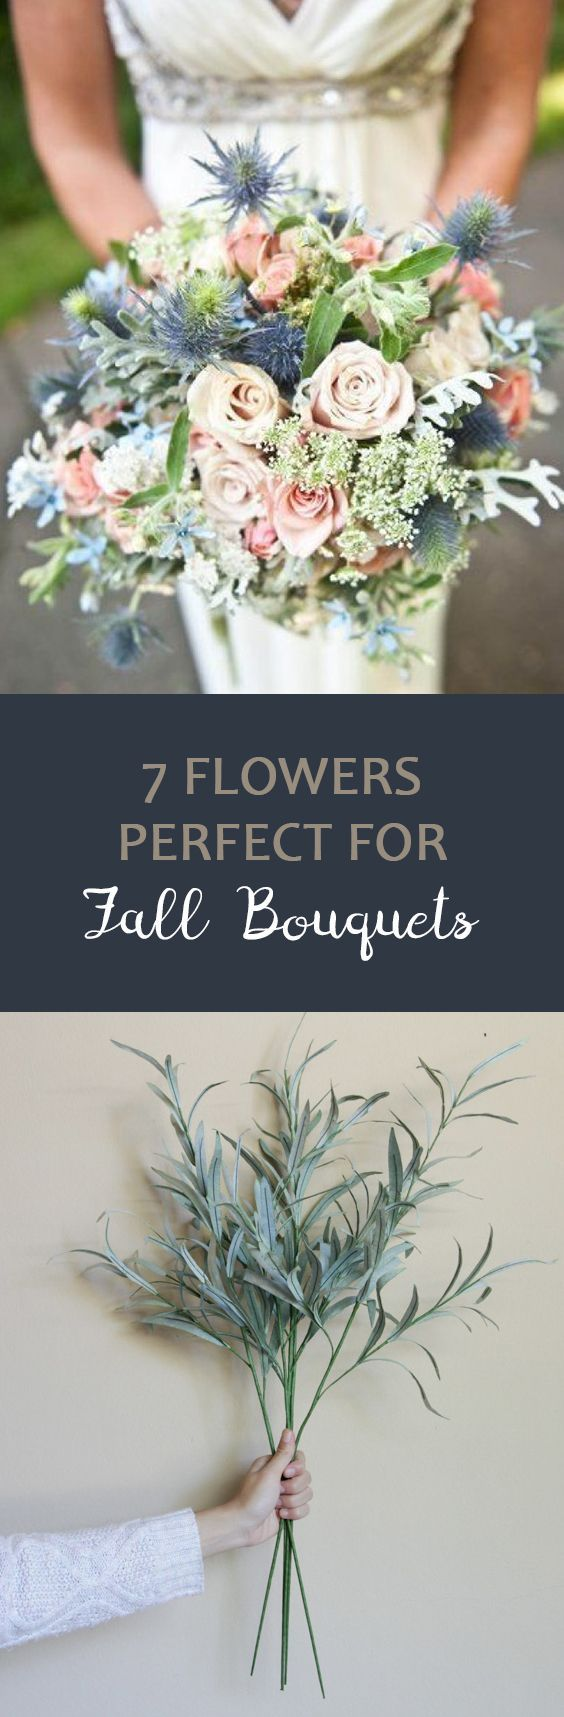 Fall flowers, fall wedding, wedding decor, popular pin, DIY flowers, wedding hacks, wedding themes, wedding bouquets, wedding flowers, wedding bouquet ideas, flowers for weddings, inexpensive wedding flowers, wedding flower hacks.